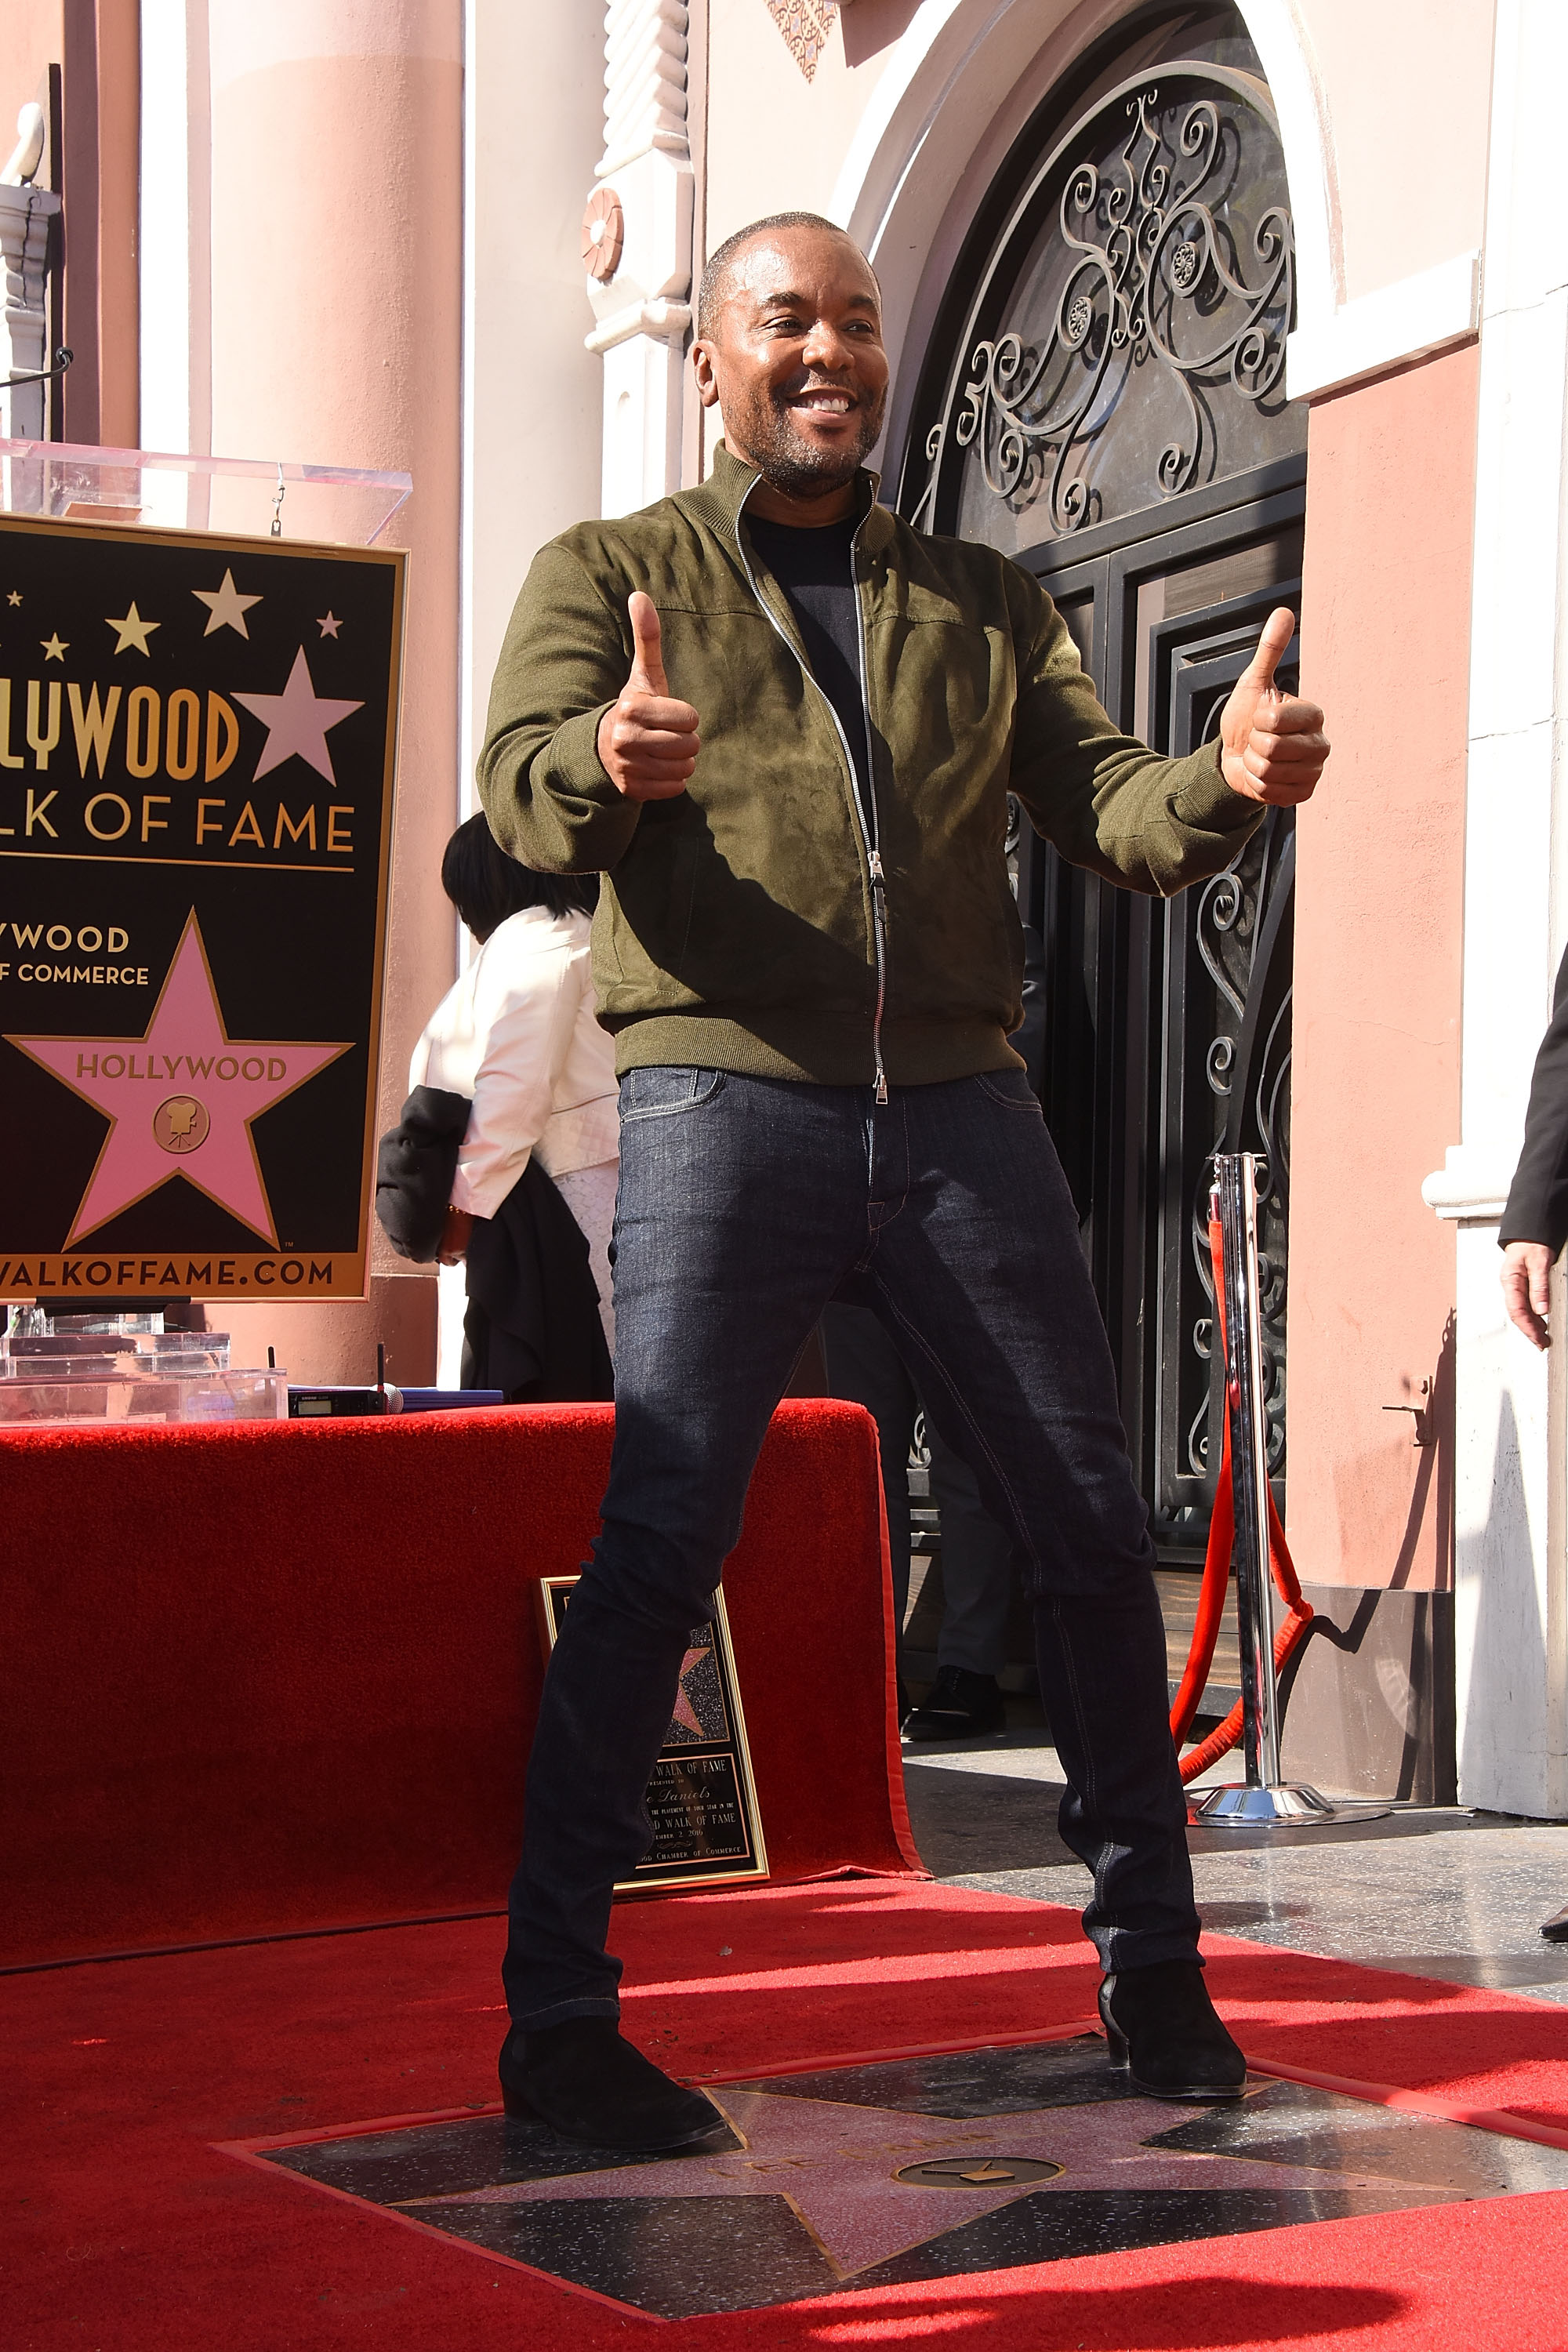 Lee Daniels Honored With Star On The Hollywood Walk Of Fame